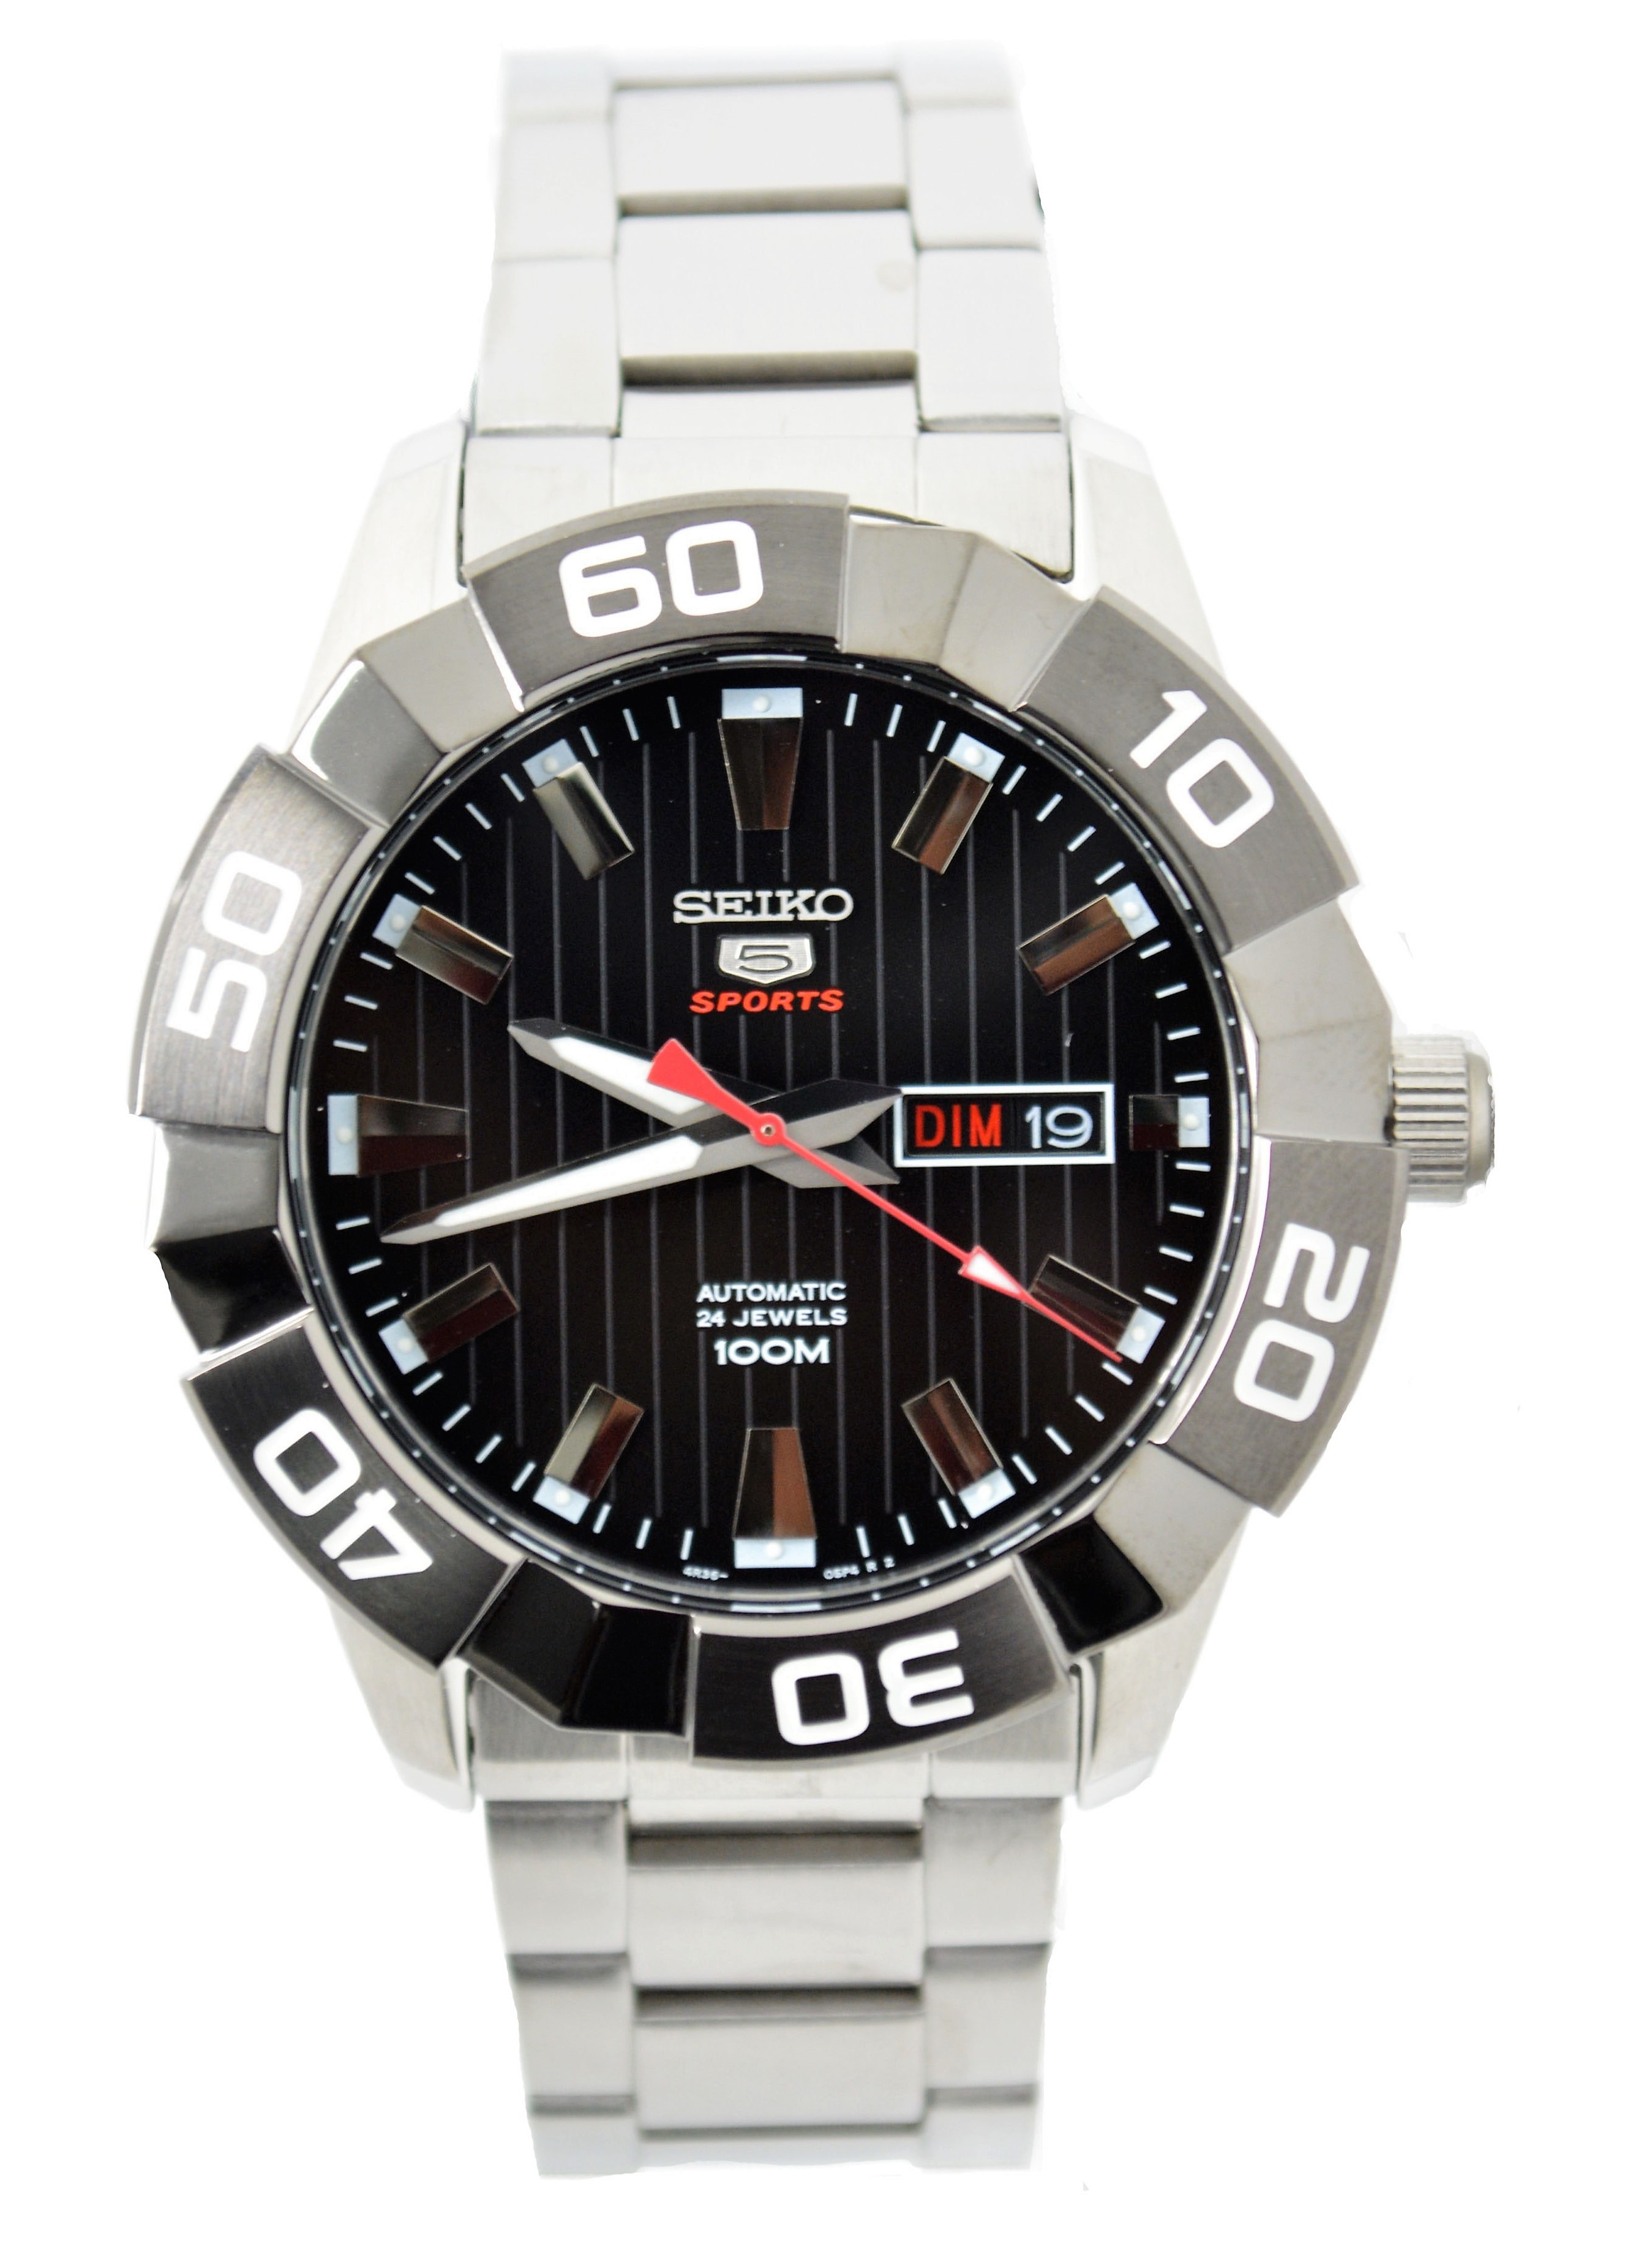 1009878445e5 SRPA55 Seiko 5 Automatic SRPA55 Black Dial Stainless Steel Men s Watch